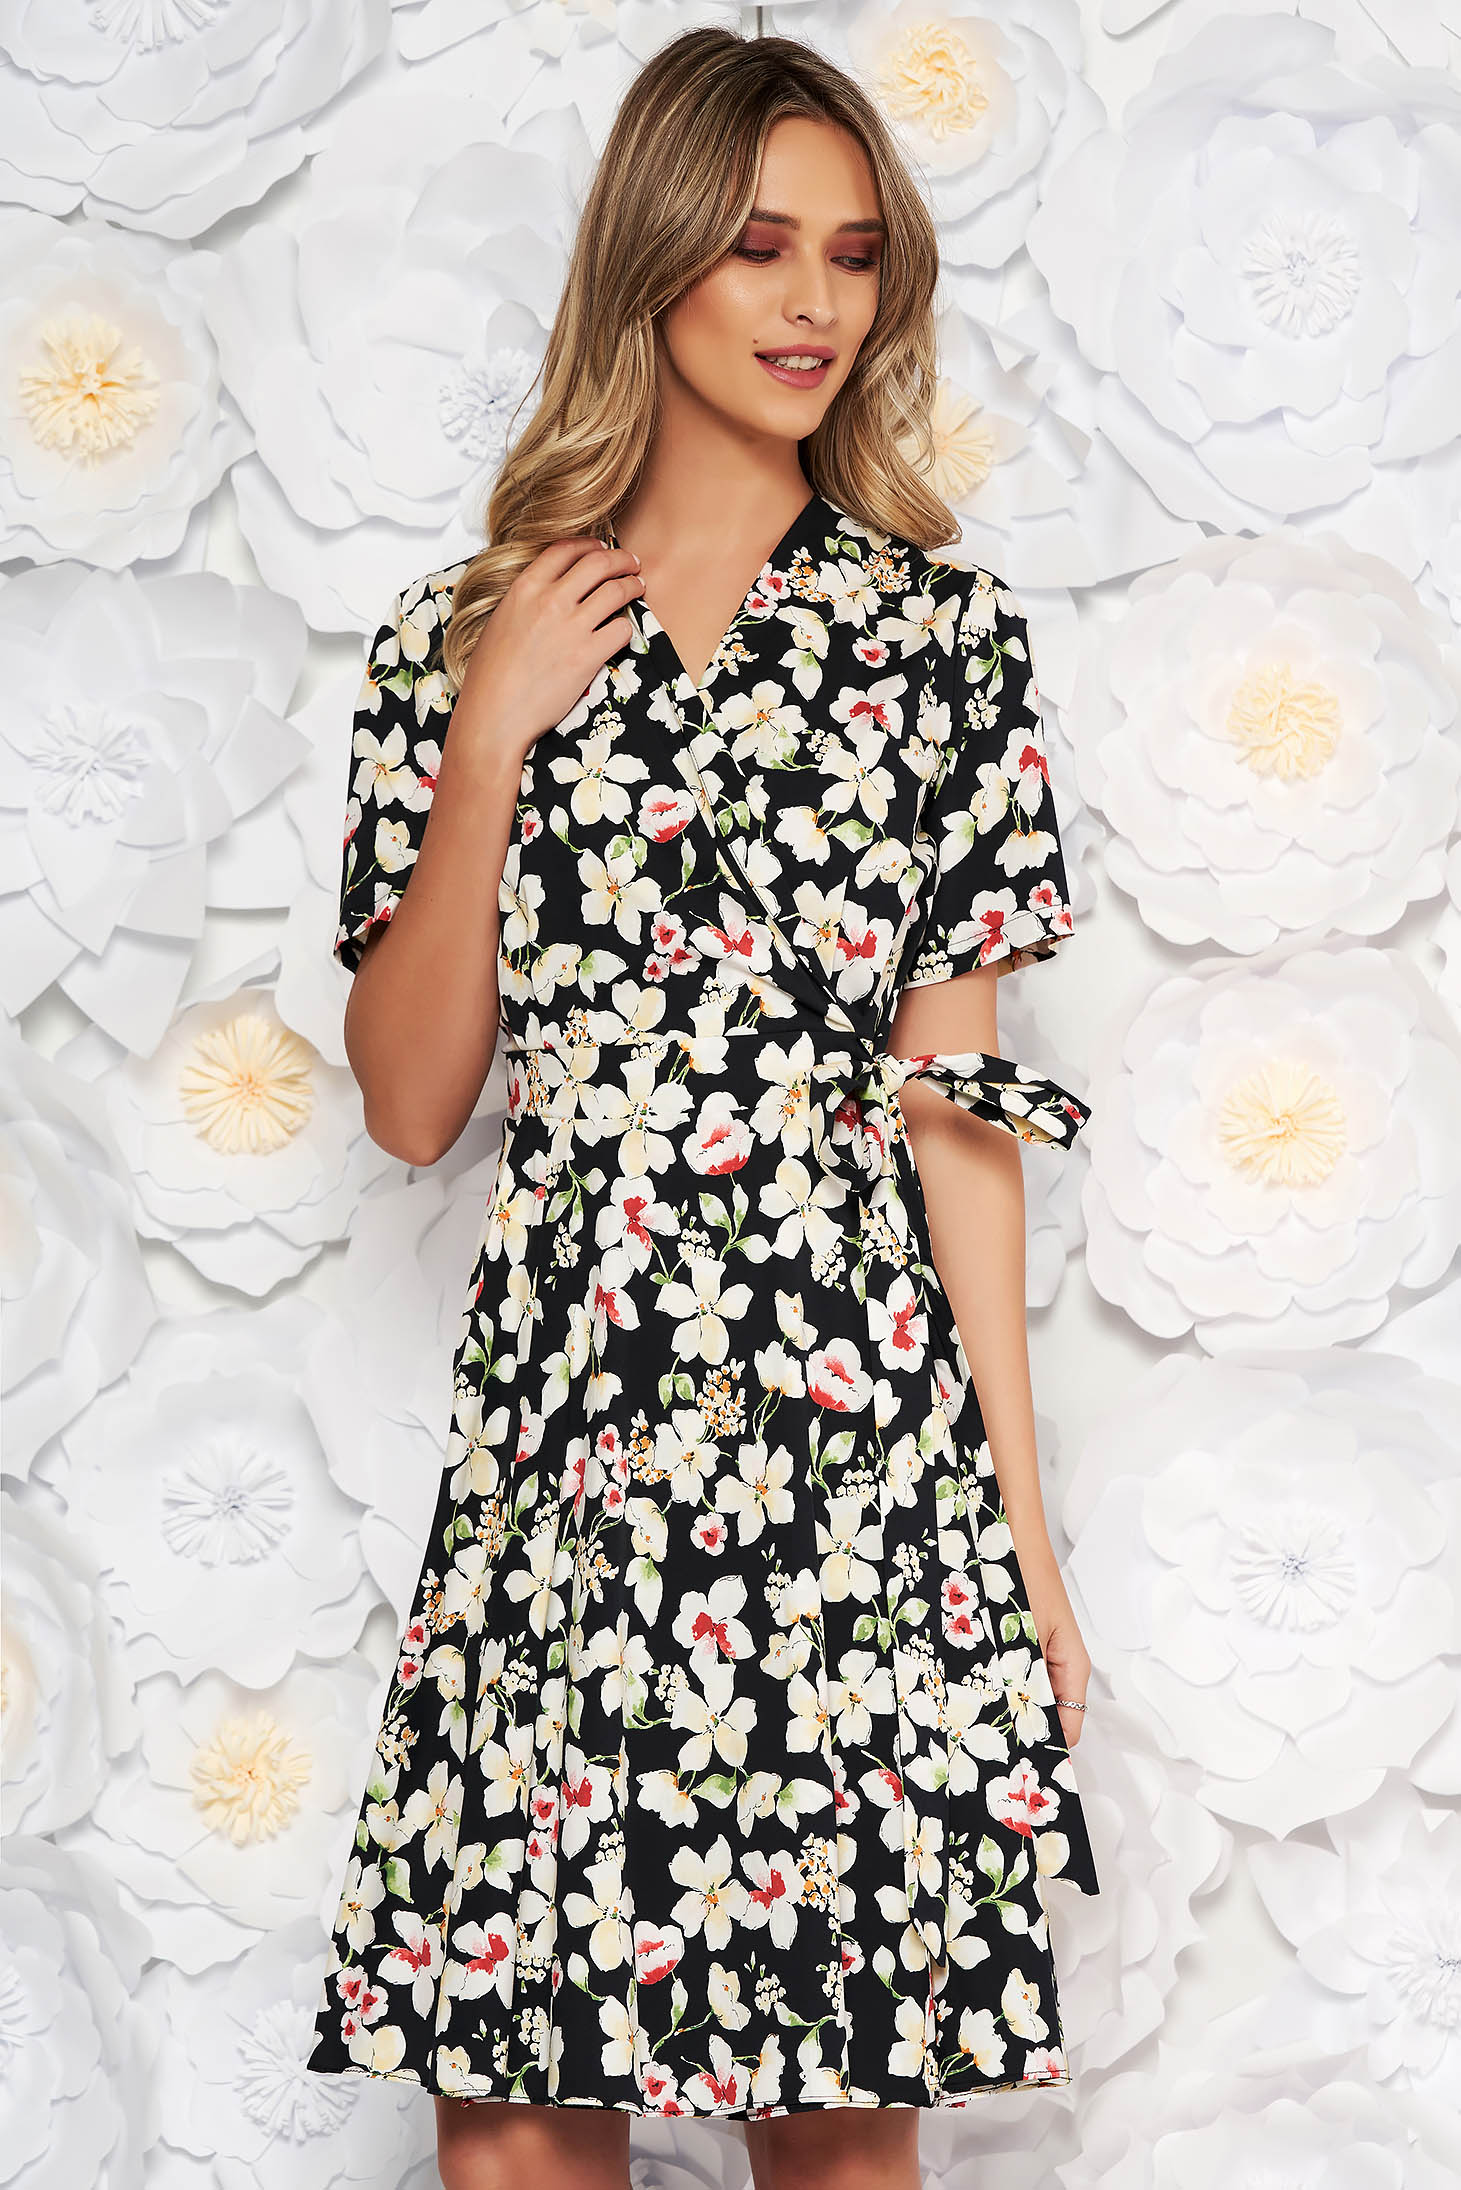 Black daily cloche dress airy fabric with floral prints accessorized with tied waistband